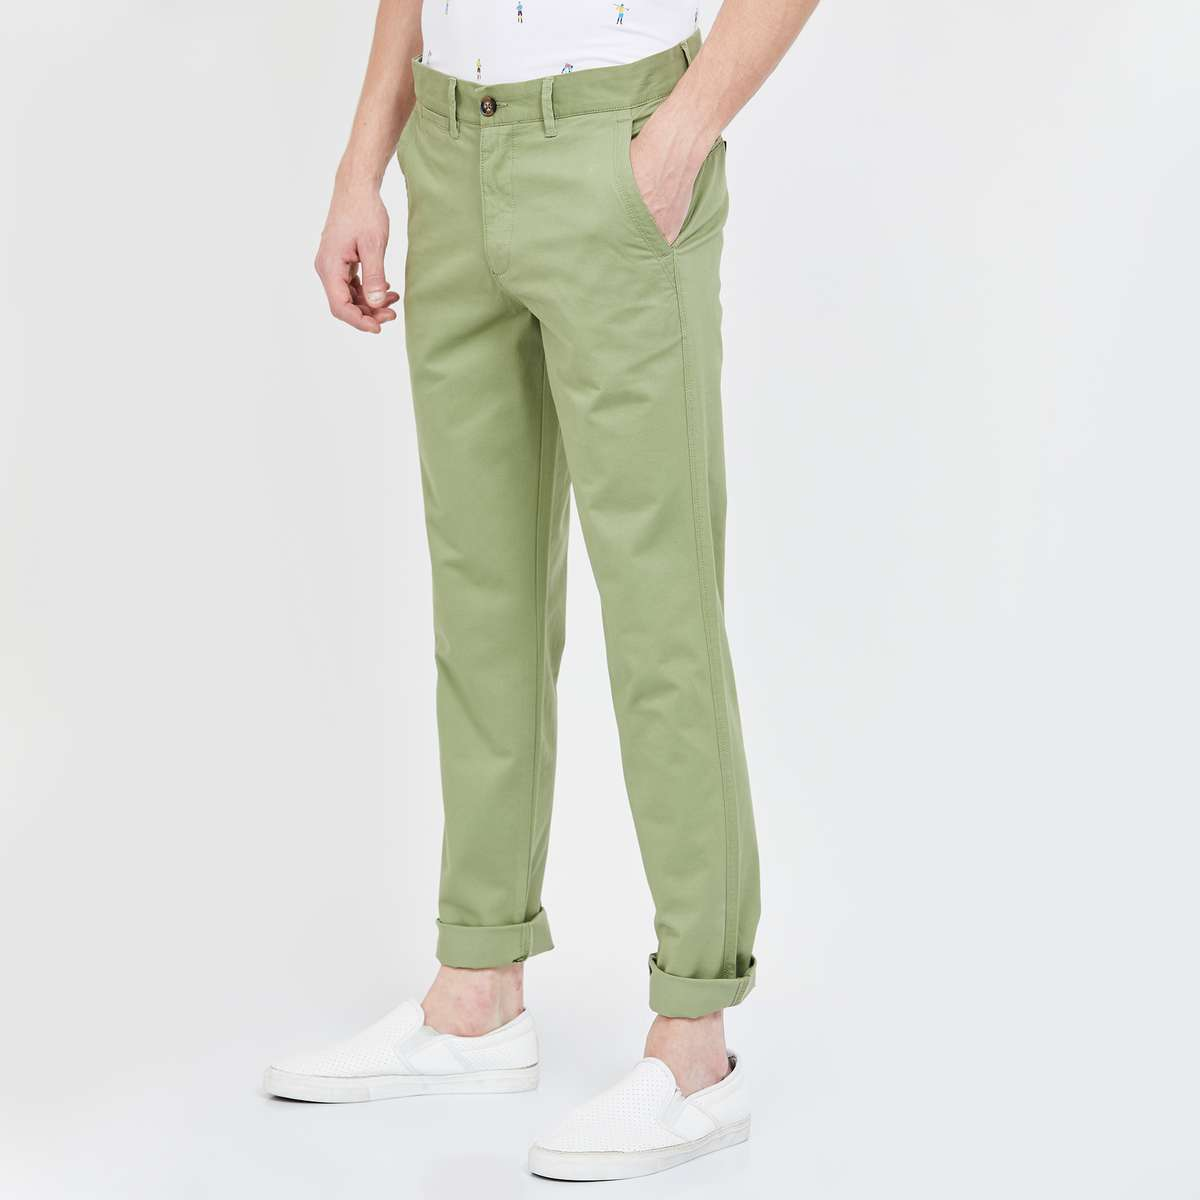 2.UNITED COLORS OF BENETTON Solid Slim Fit Chinos